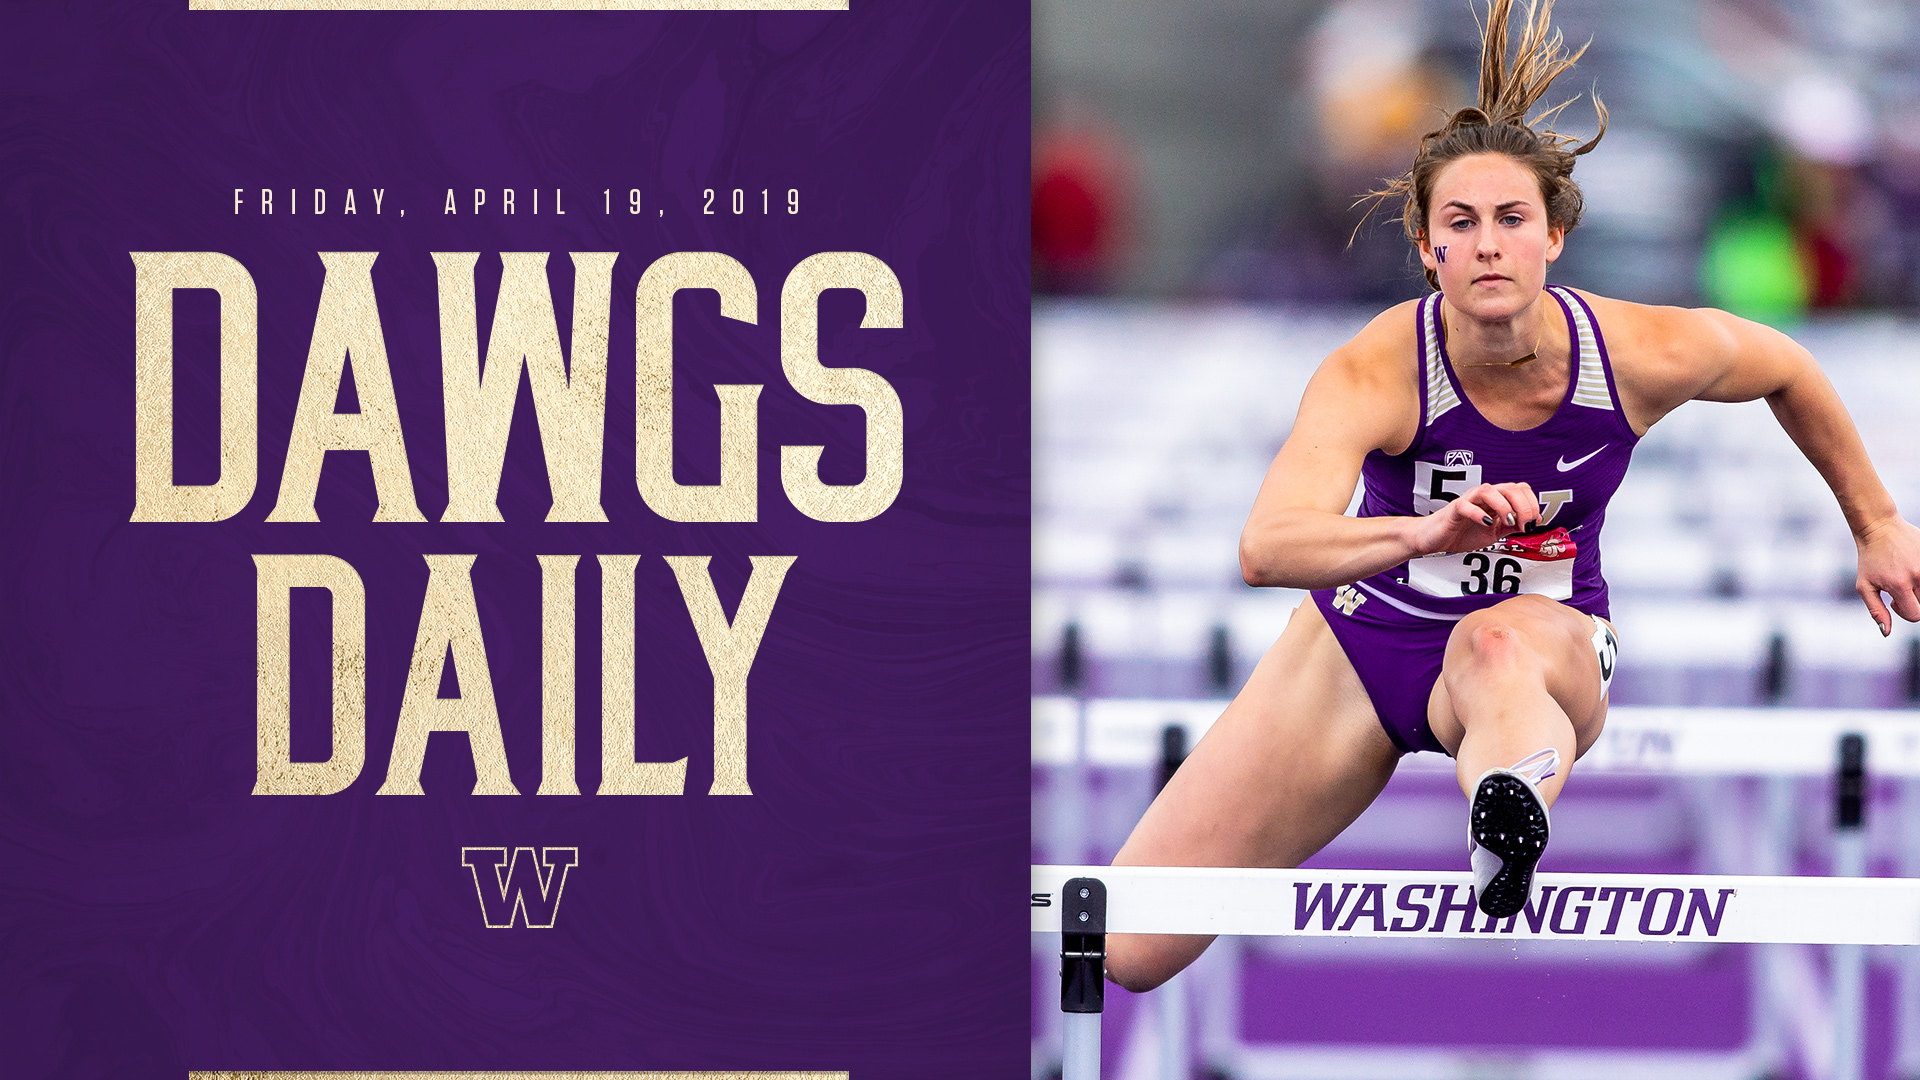 Dawgs Daily: Friday, April 19